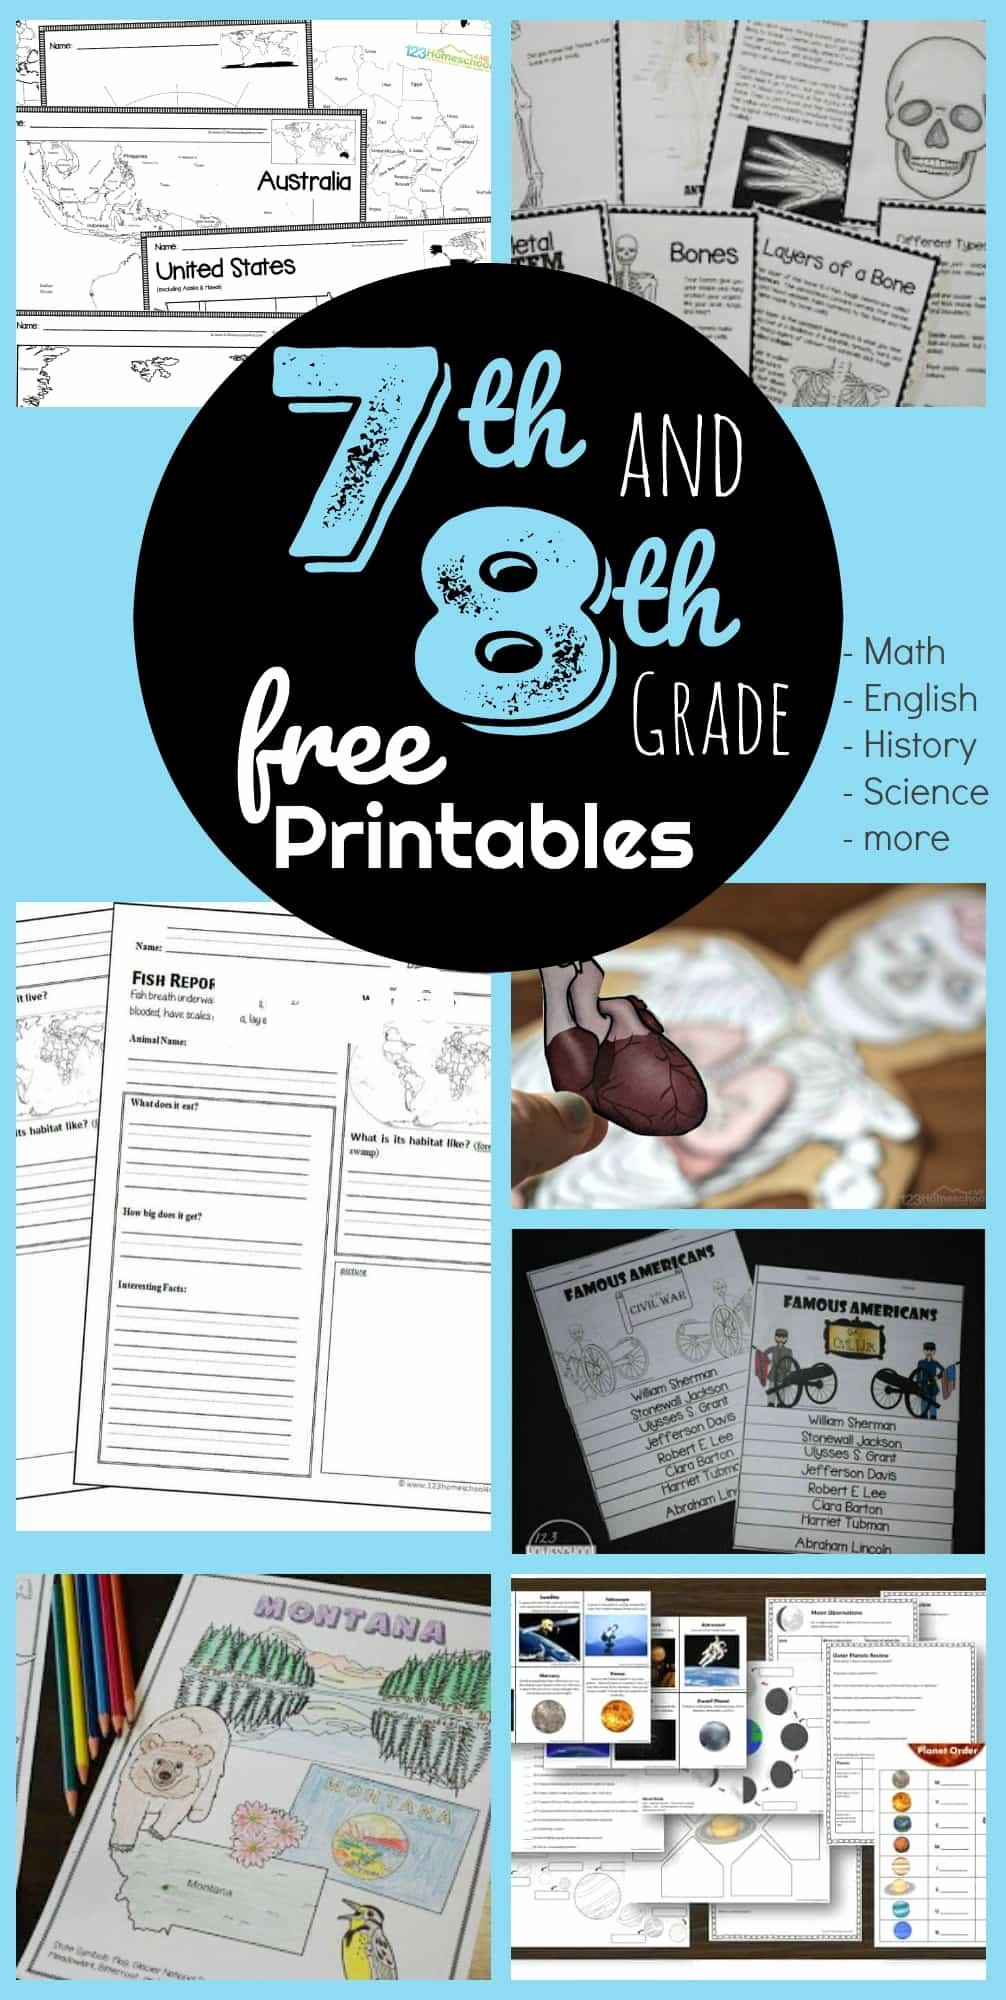 Free 8th Grade Science Worksheets New Free 7th & 8th Grade Worksheets